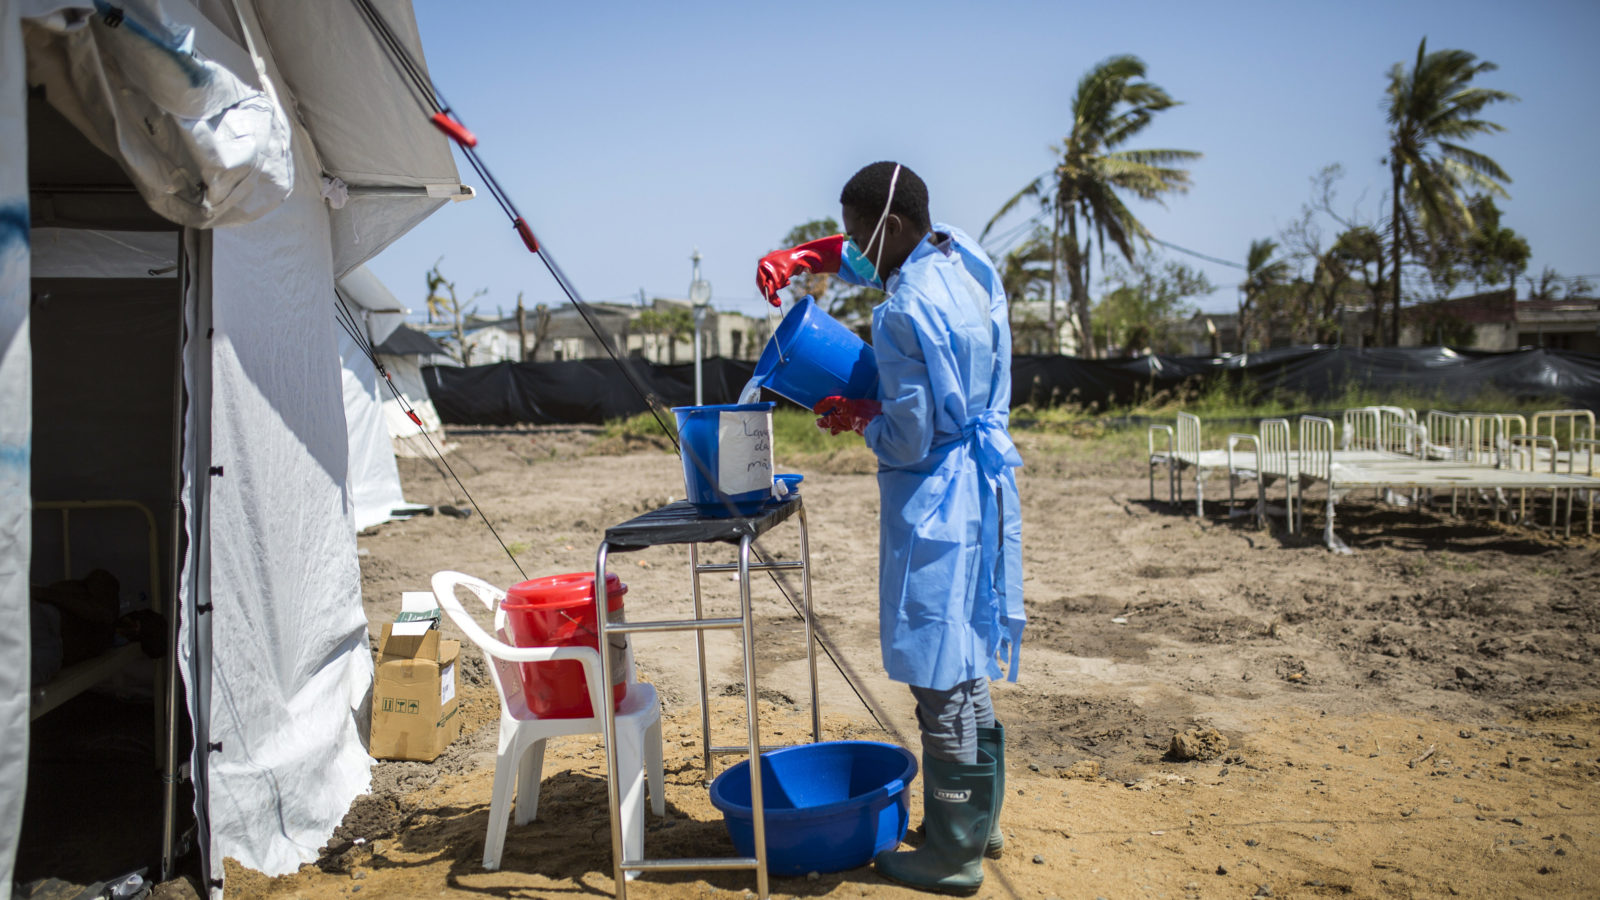 A medical worker fills a bucket with clean water outside an emergency treatment tent at the Macurungo Urban Health Center in Beira, Mozambique, on Friday, March 29, 2019. Cyclone Idai hit the Mozambican coast earlier this month, devastating the port city of Beira and killing at least 700 people in Mozambique, Zimbabwe and Malawi. Cyclone Kenneth is dealing a second blow to the country. (Guillem Sartorio/Bloomberg via Getty Images